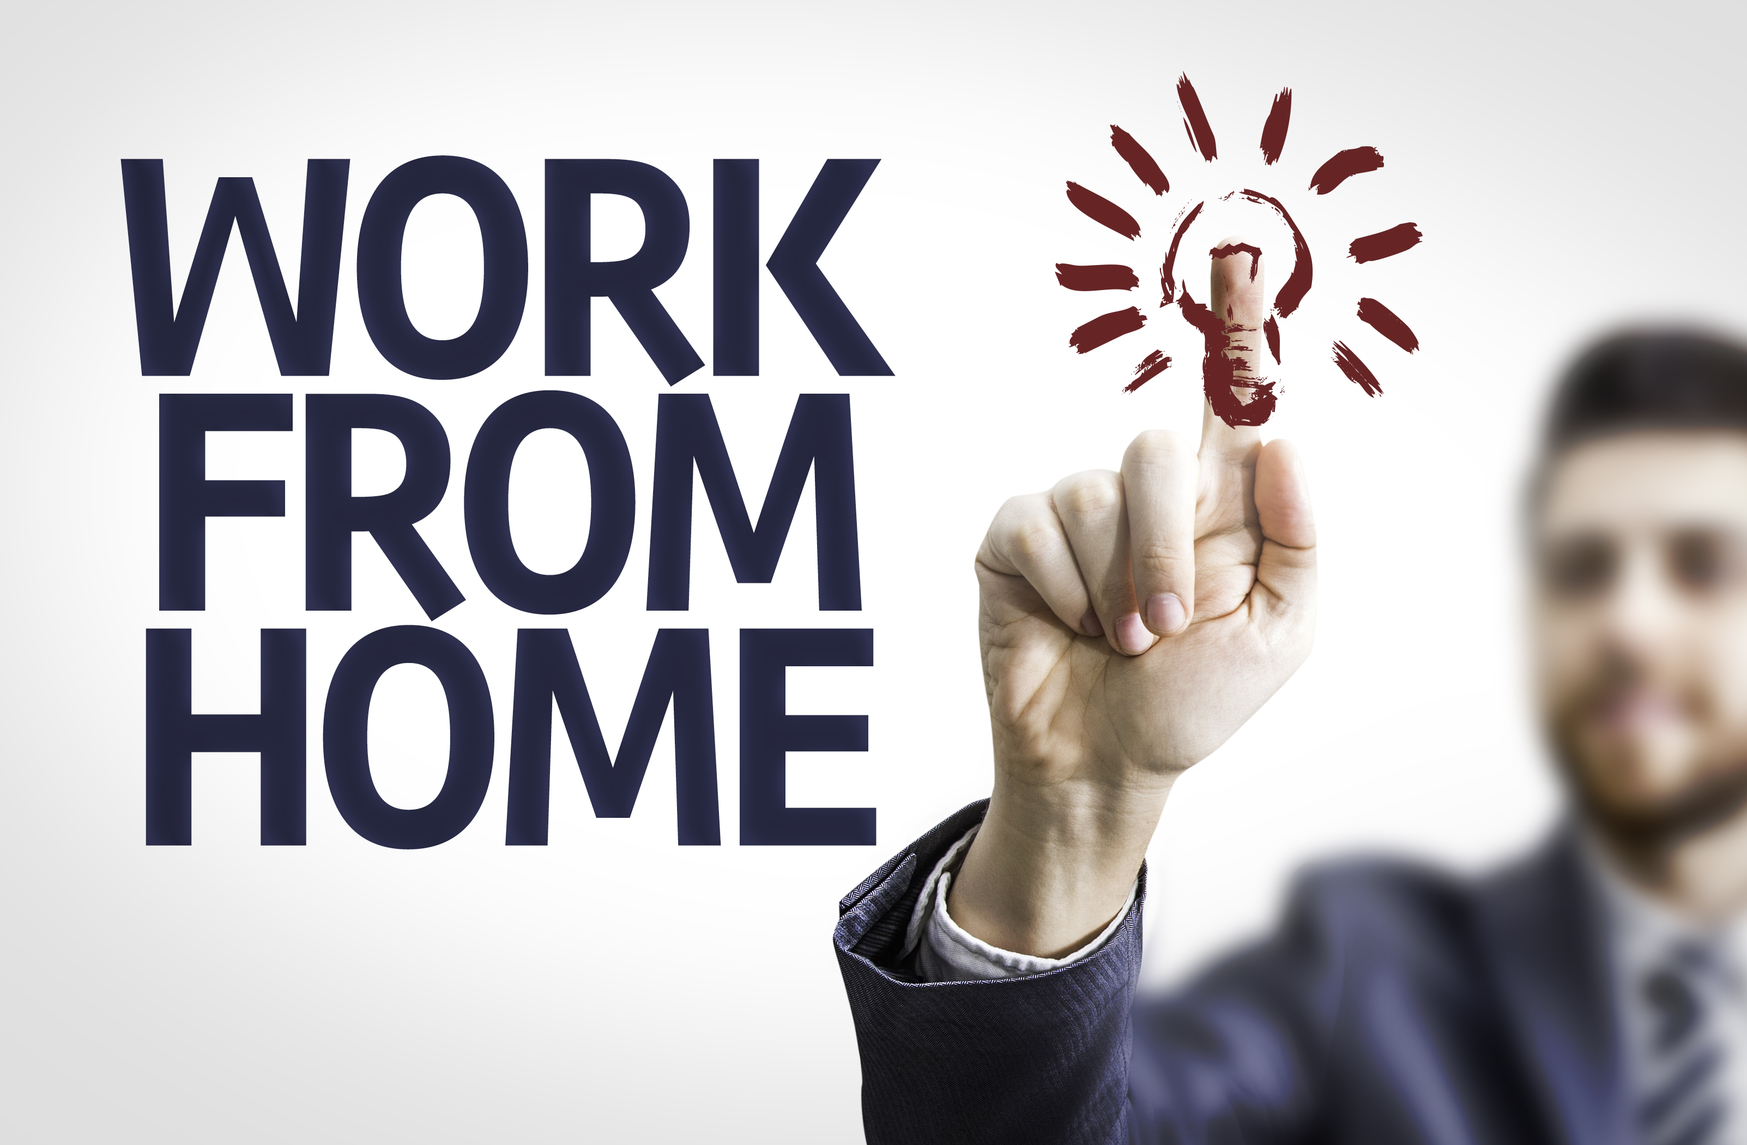 work from home jobs - Home Surfing Online